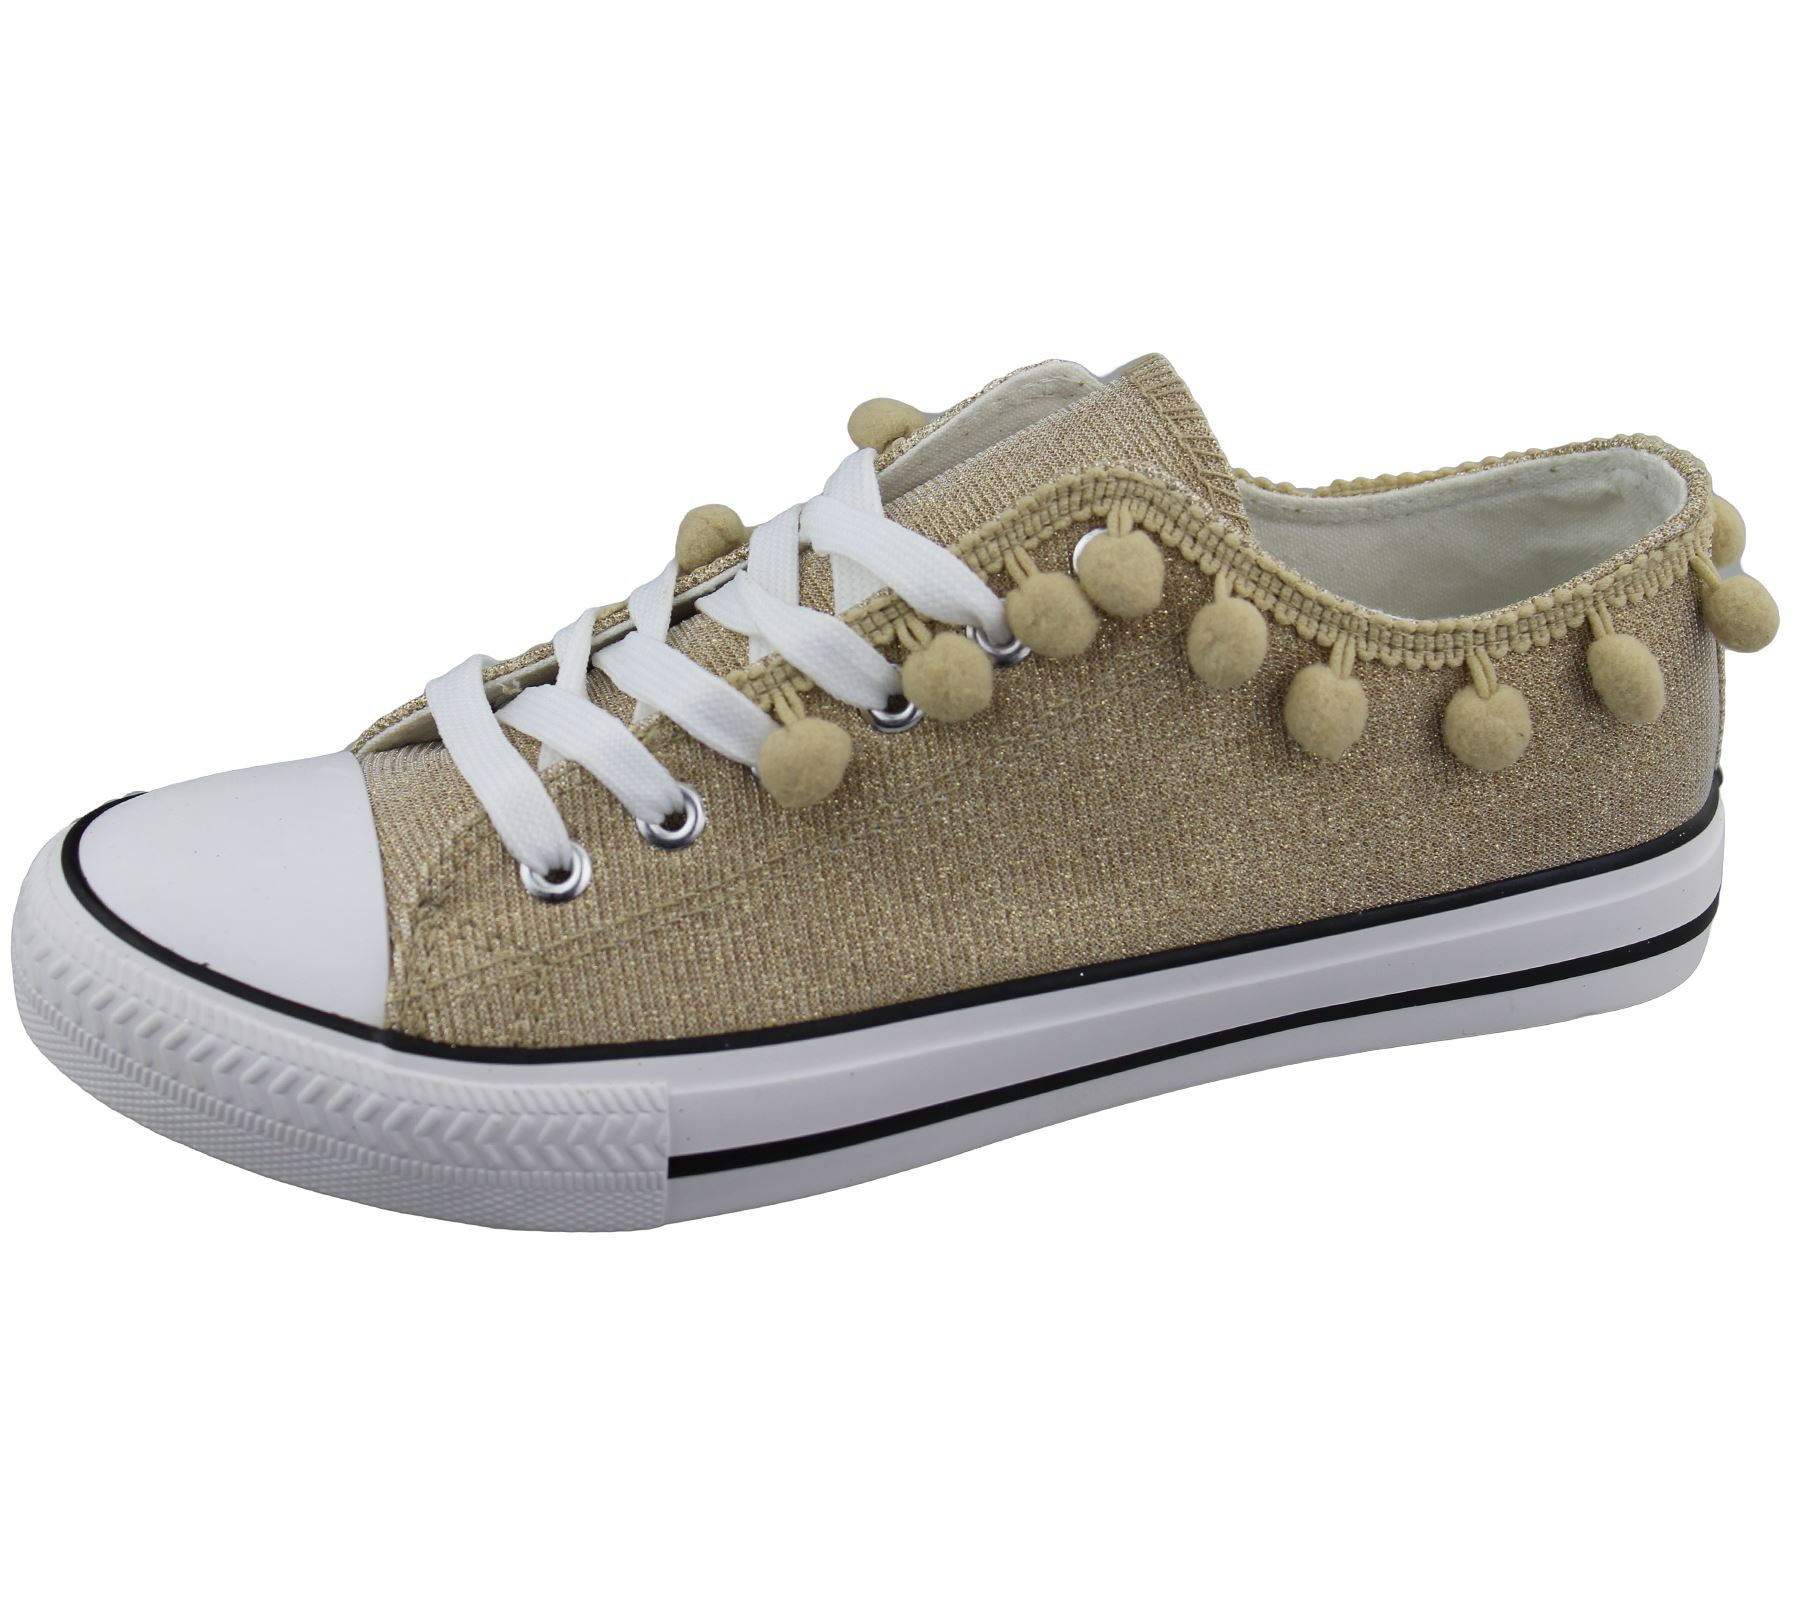 Womens-Sneakers-Flat-Pumps-Ladies-Glittered-Summer-Plimsole-Canvas-Shoes thumbnail 21